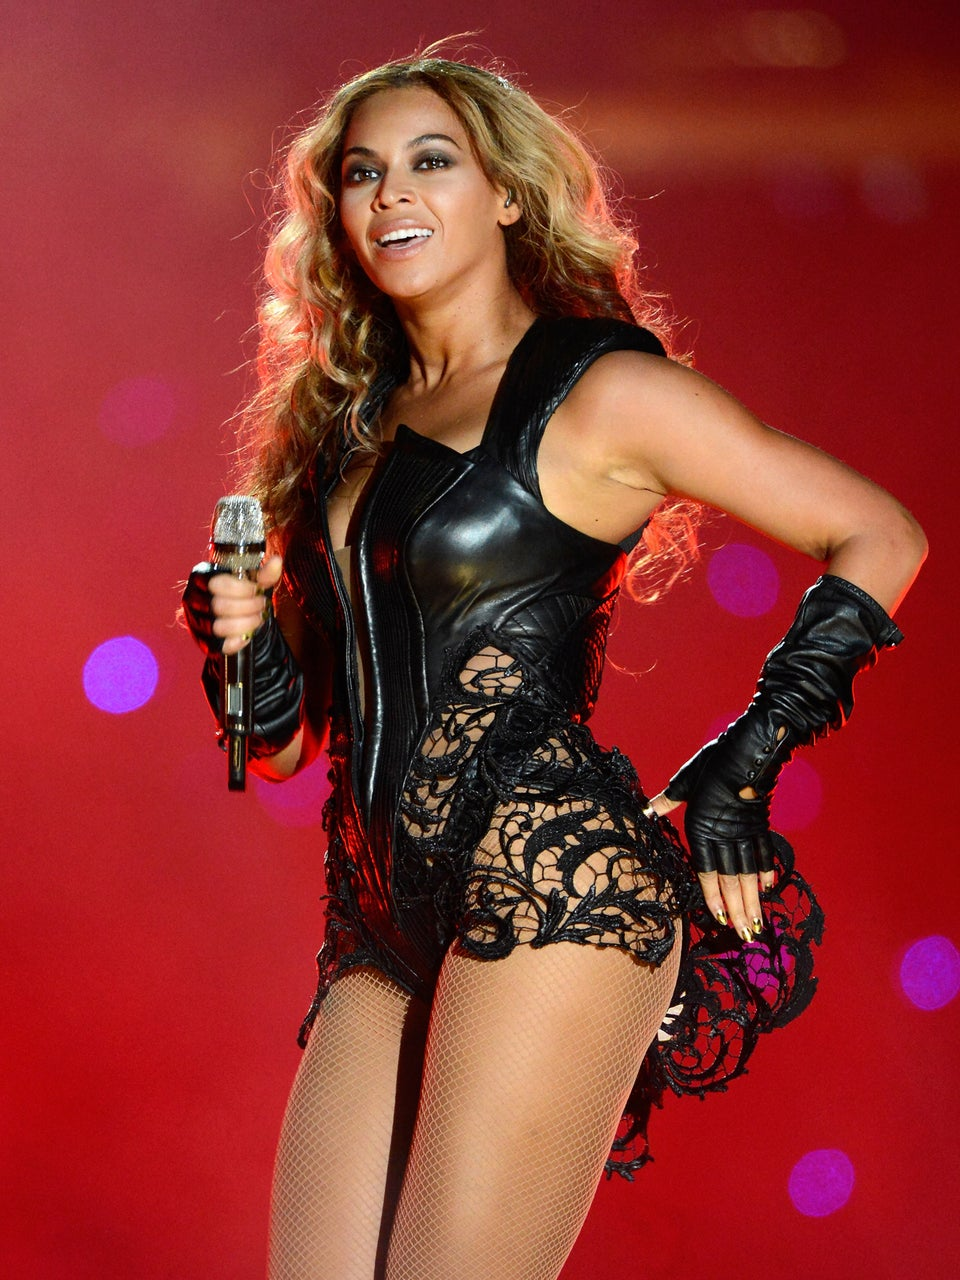 Must-See: Watch Beyonce's Super Bowl Halftime Performance